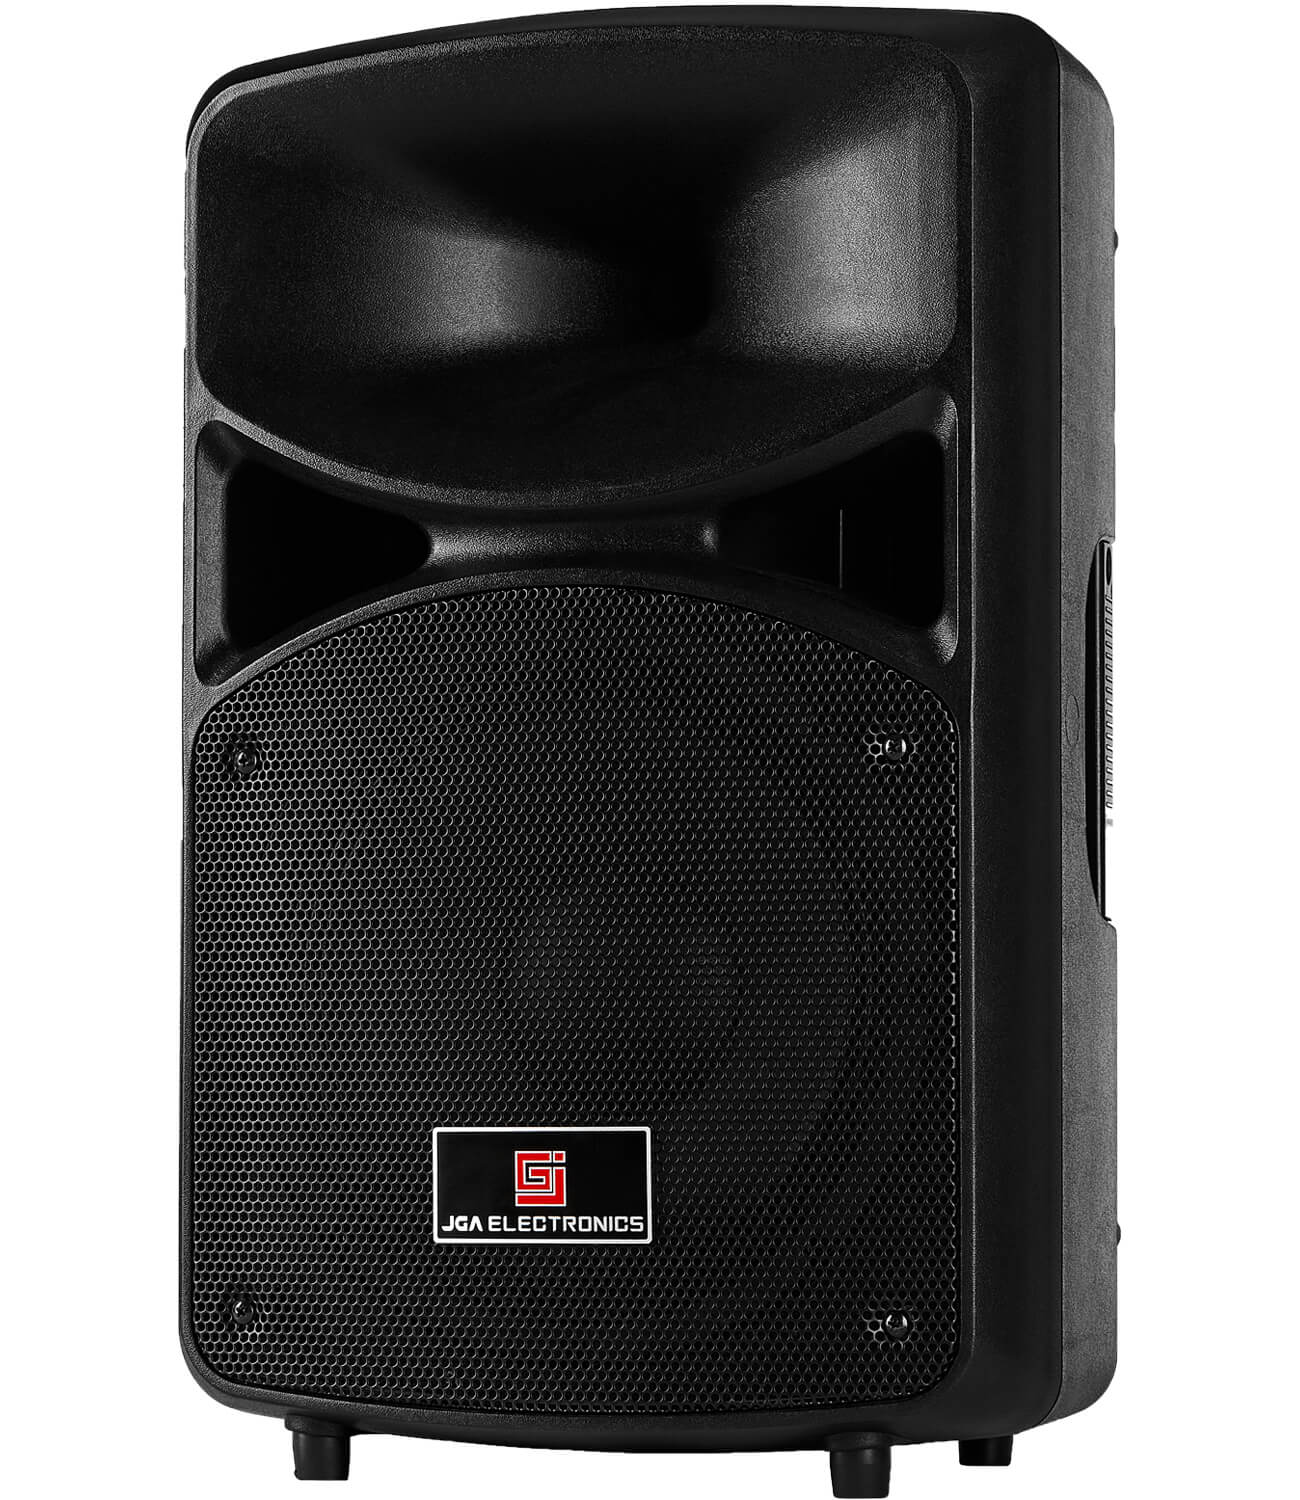 JGA-10PA 35 Active 10 Inch PA Speaker Compact & Portable Set with Remote Control, Bluetooth, FM Radio-JGA ELECTRONICS